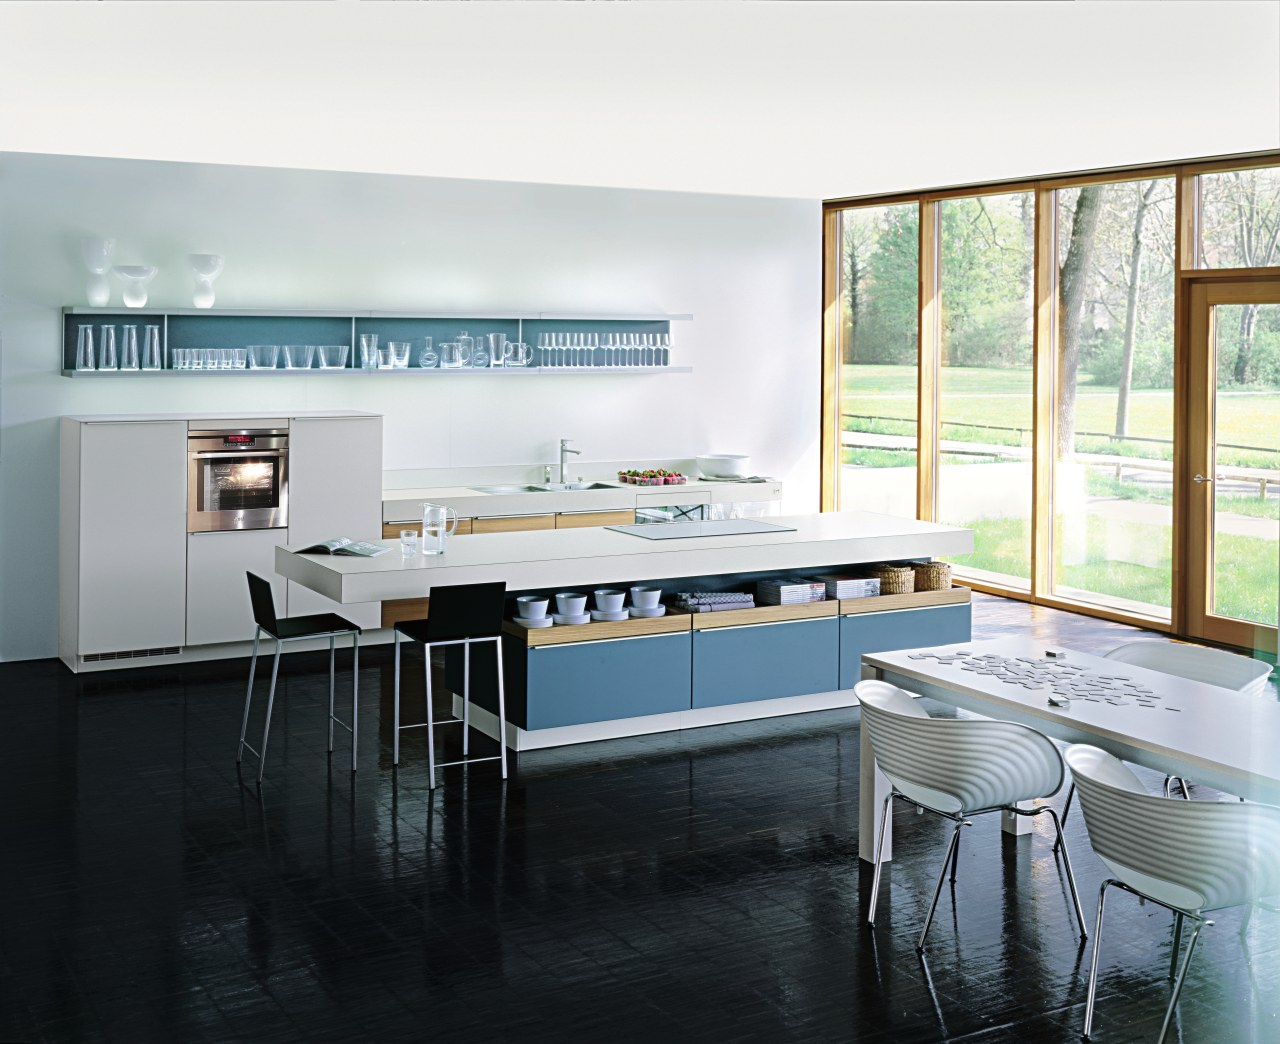 A view of some kitchen appliances from AEG. countertop, interior design, kitchen, room, window, white, black